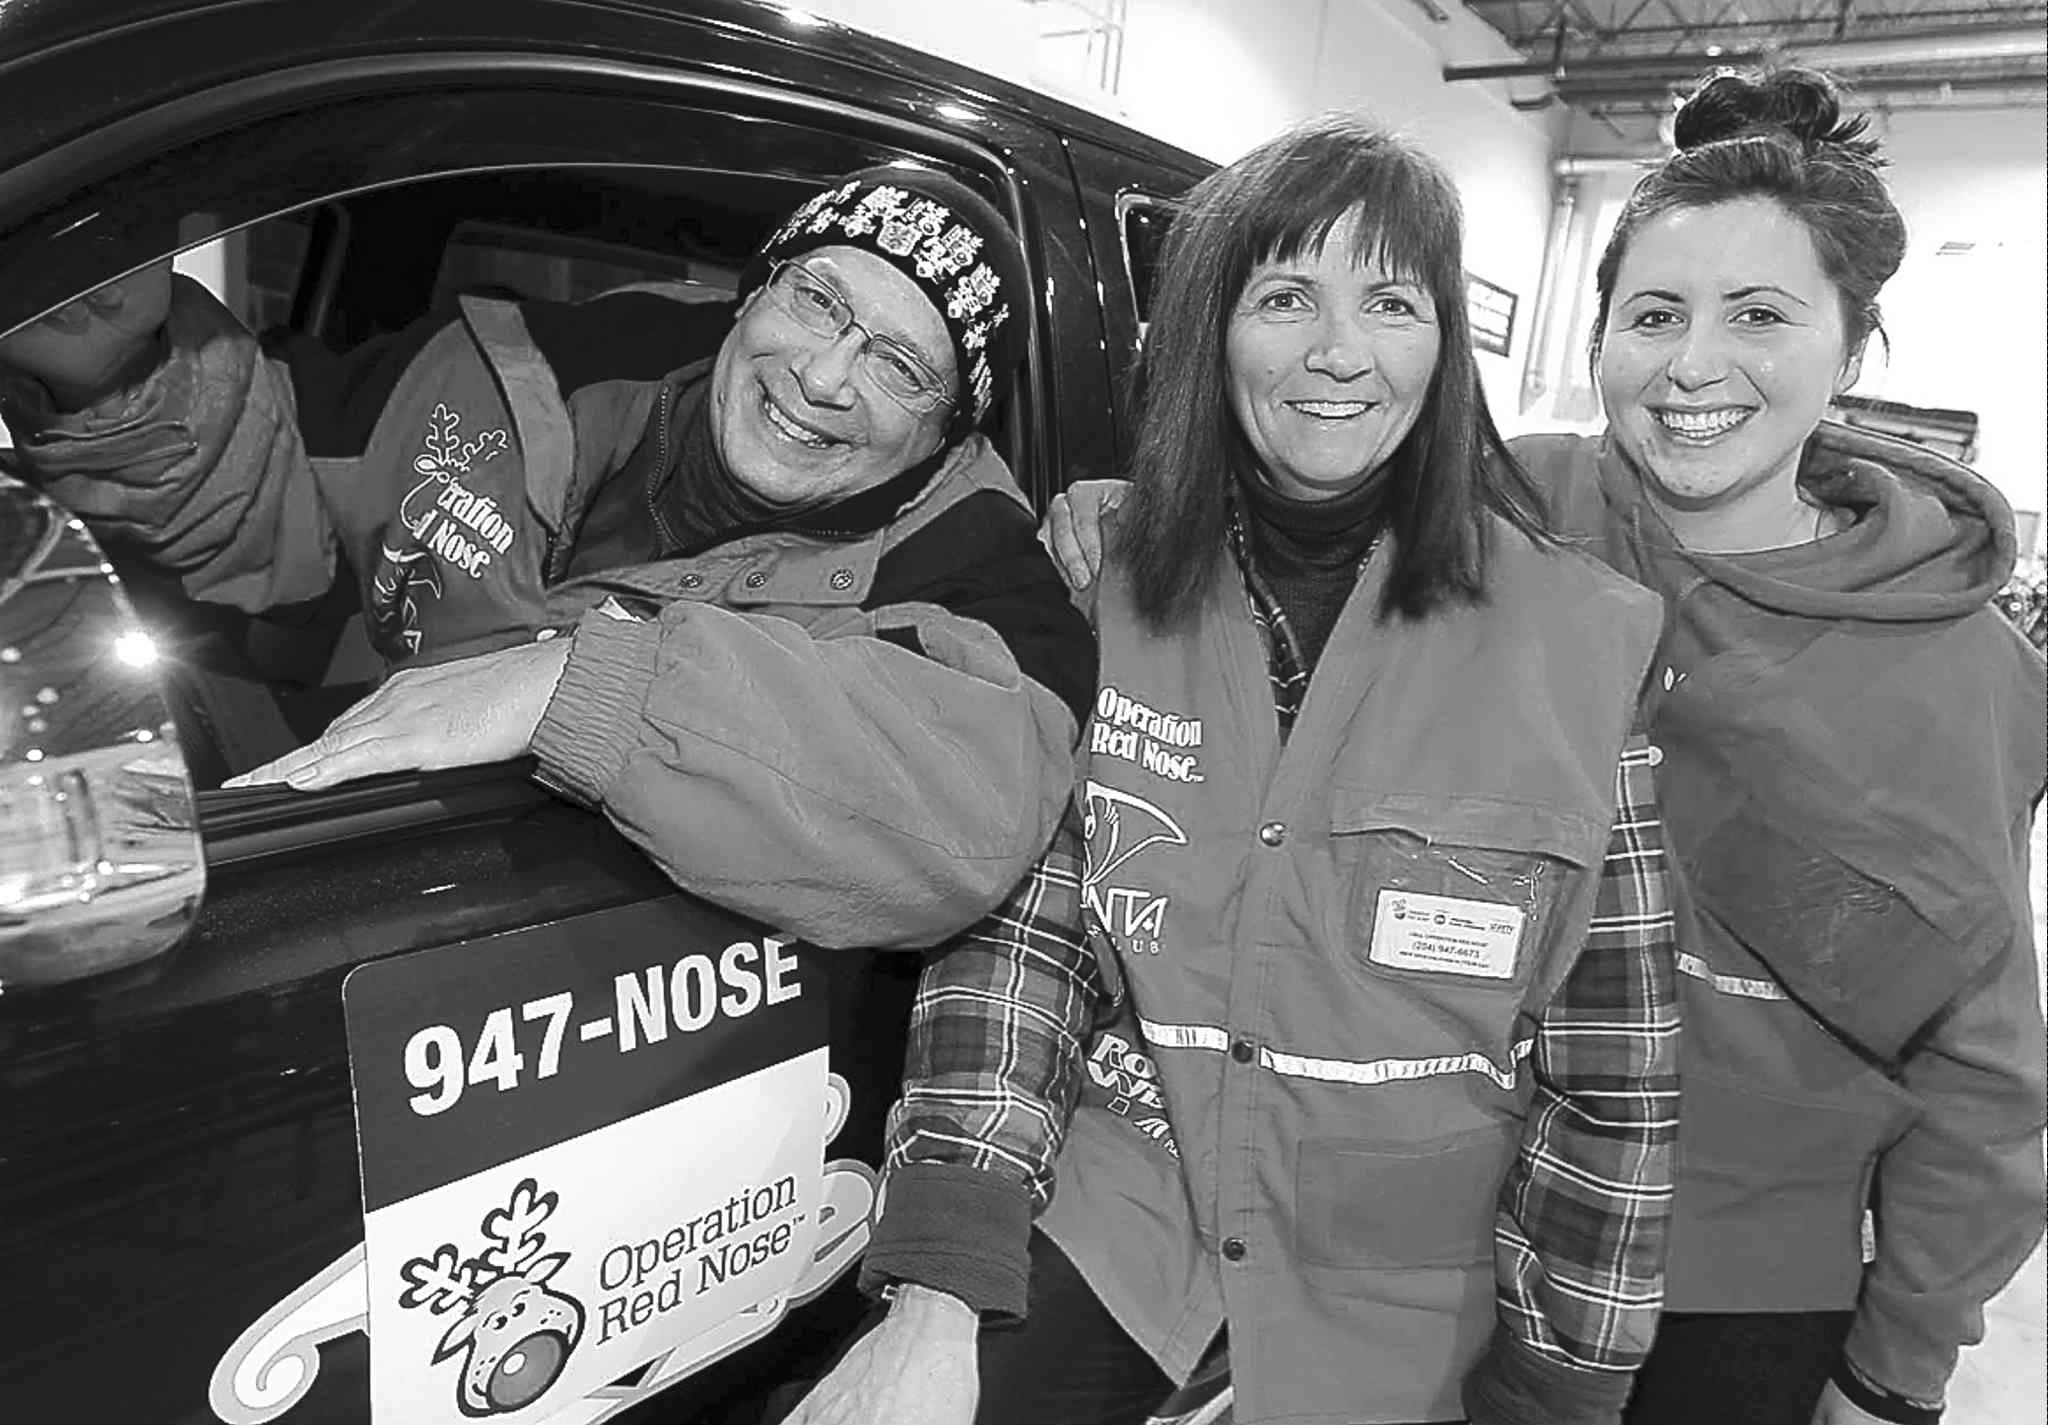 BORIS MINKEVICH / WINNIPEG FREE PRESS SFlbOperation Red Nose volunteers (from left) Allan Kauk, Michele Rousseau and Janelle Asselin will brave the cold this holiday season to get partygoers and their vehicles home safely.